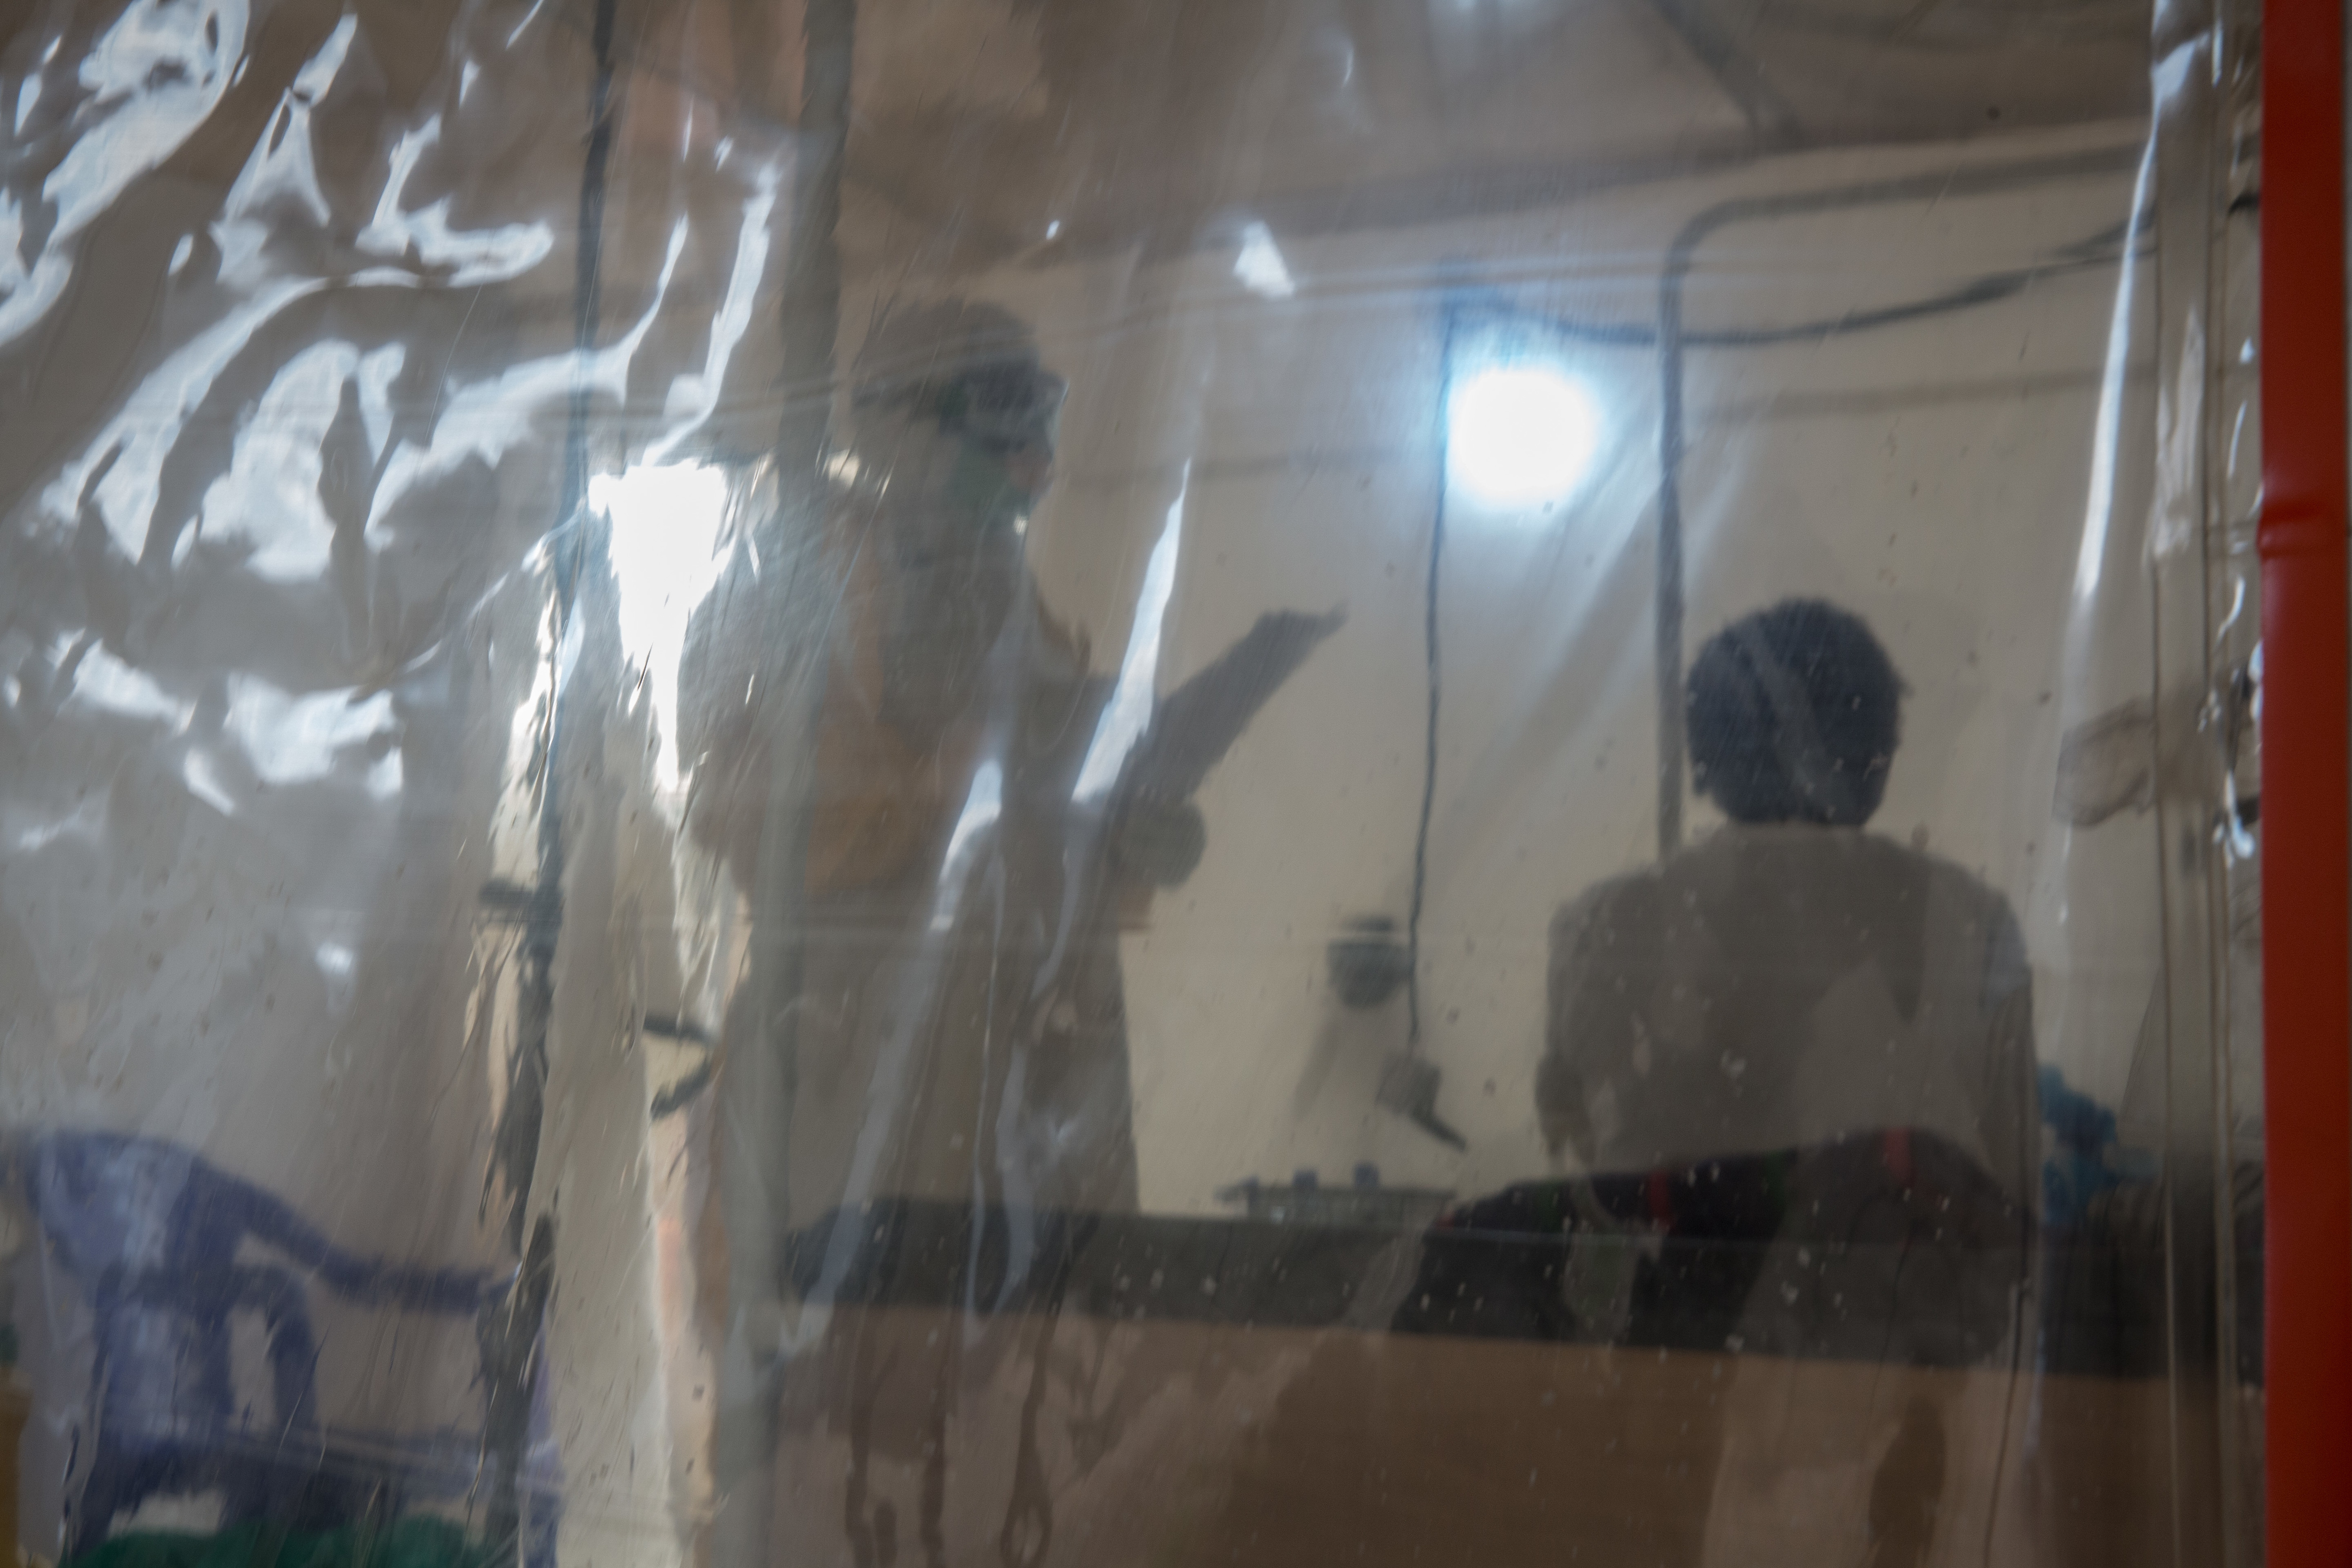 BENI, DEMOCRATIC REPUBLIC OF CONGO - A doctor wearing full protective gear speaks to a patient in the Ebola treatment centre in Beni, eastern Democratic Republic of the Congo.The DRC is currently experiencing the second worst Ebola outbreak in recorded history. (Photo by Sally Hayden/SOPA Images/LightRocket via Getty Images)